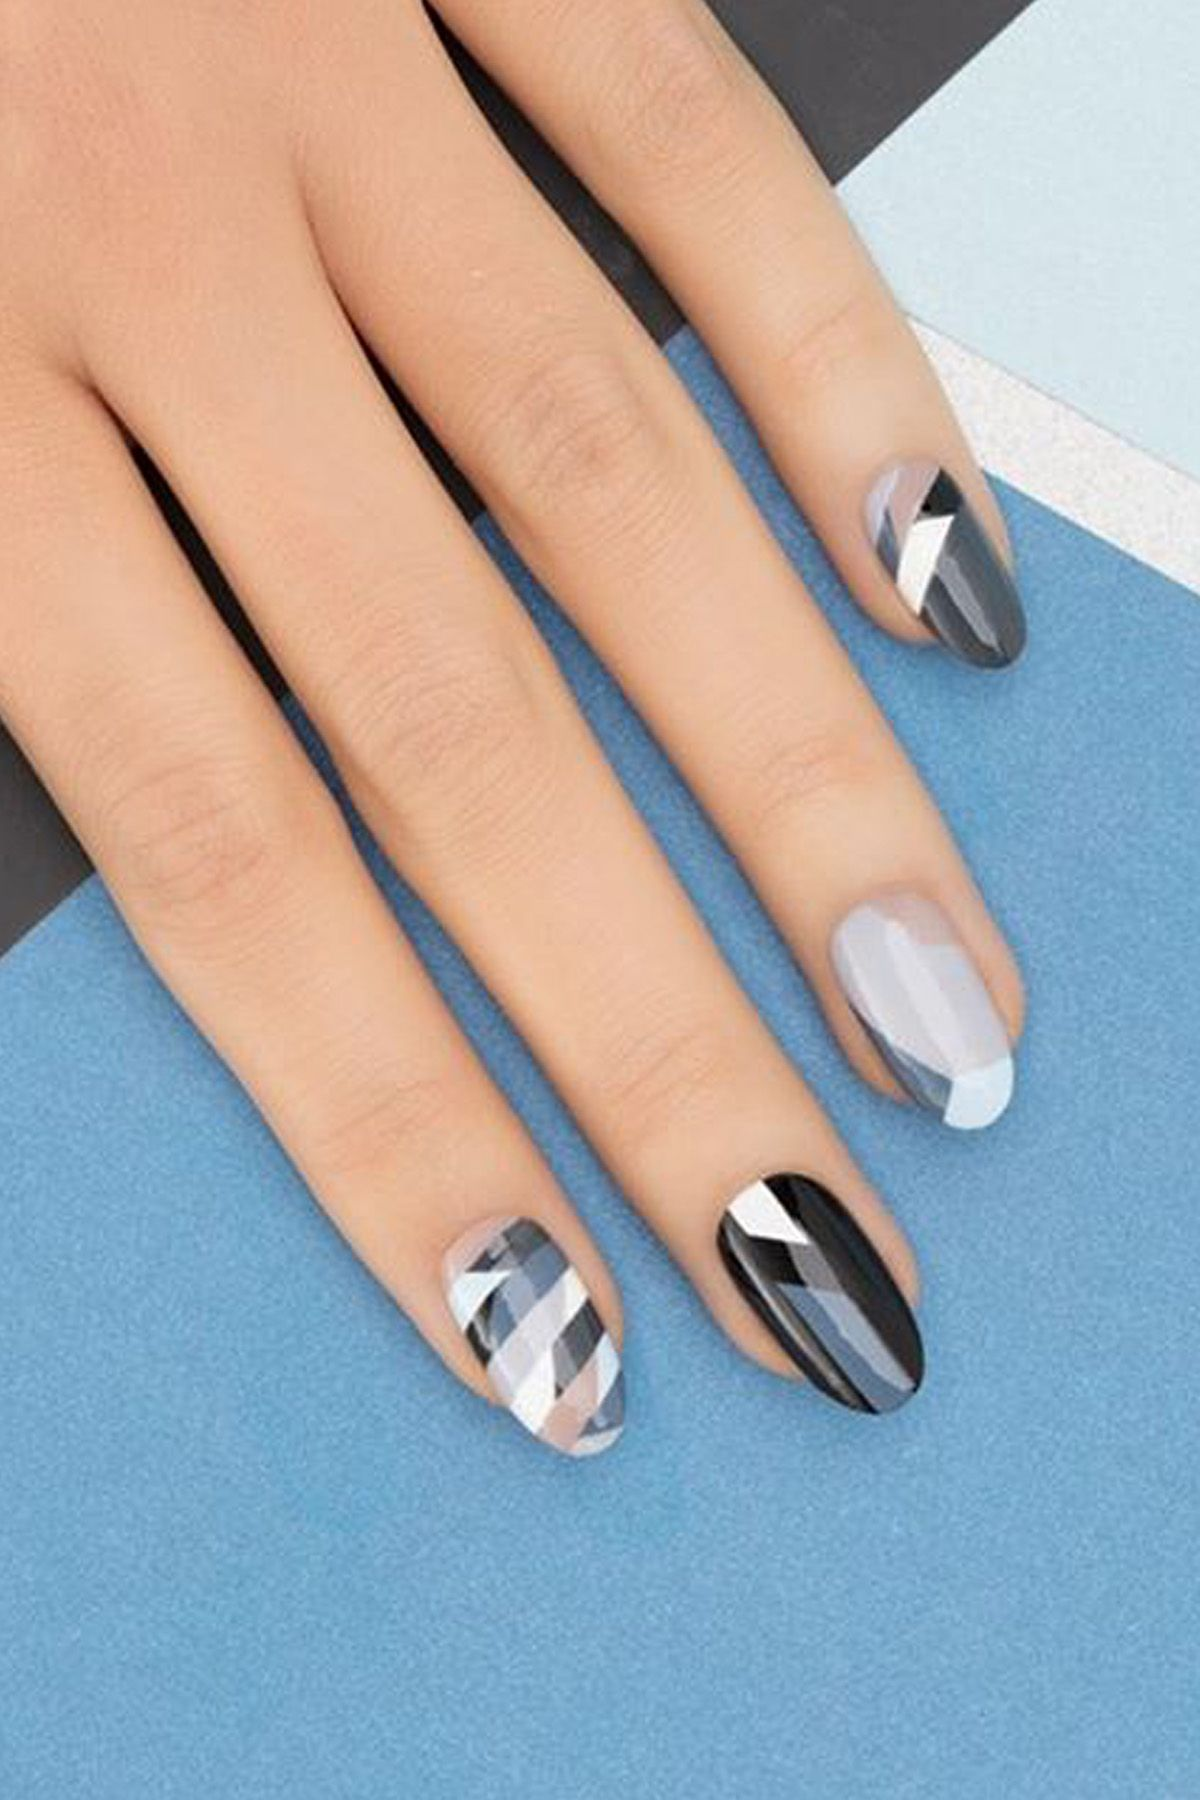 20 Best Nail Designs For 2018 Top Nail Design Ideas Trends